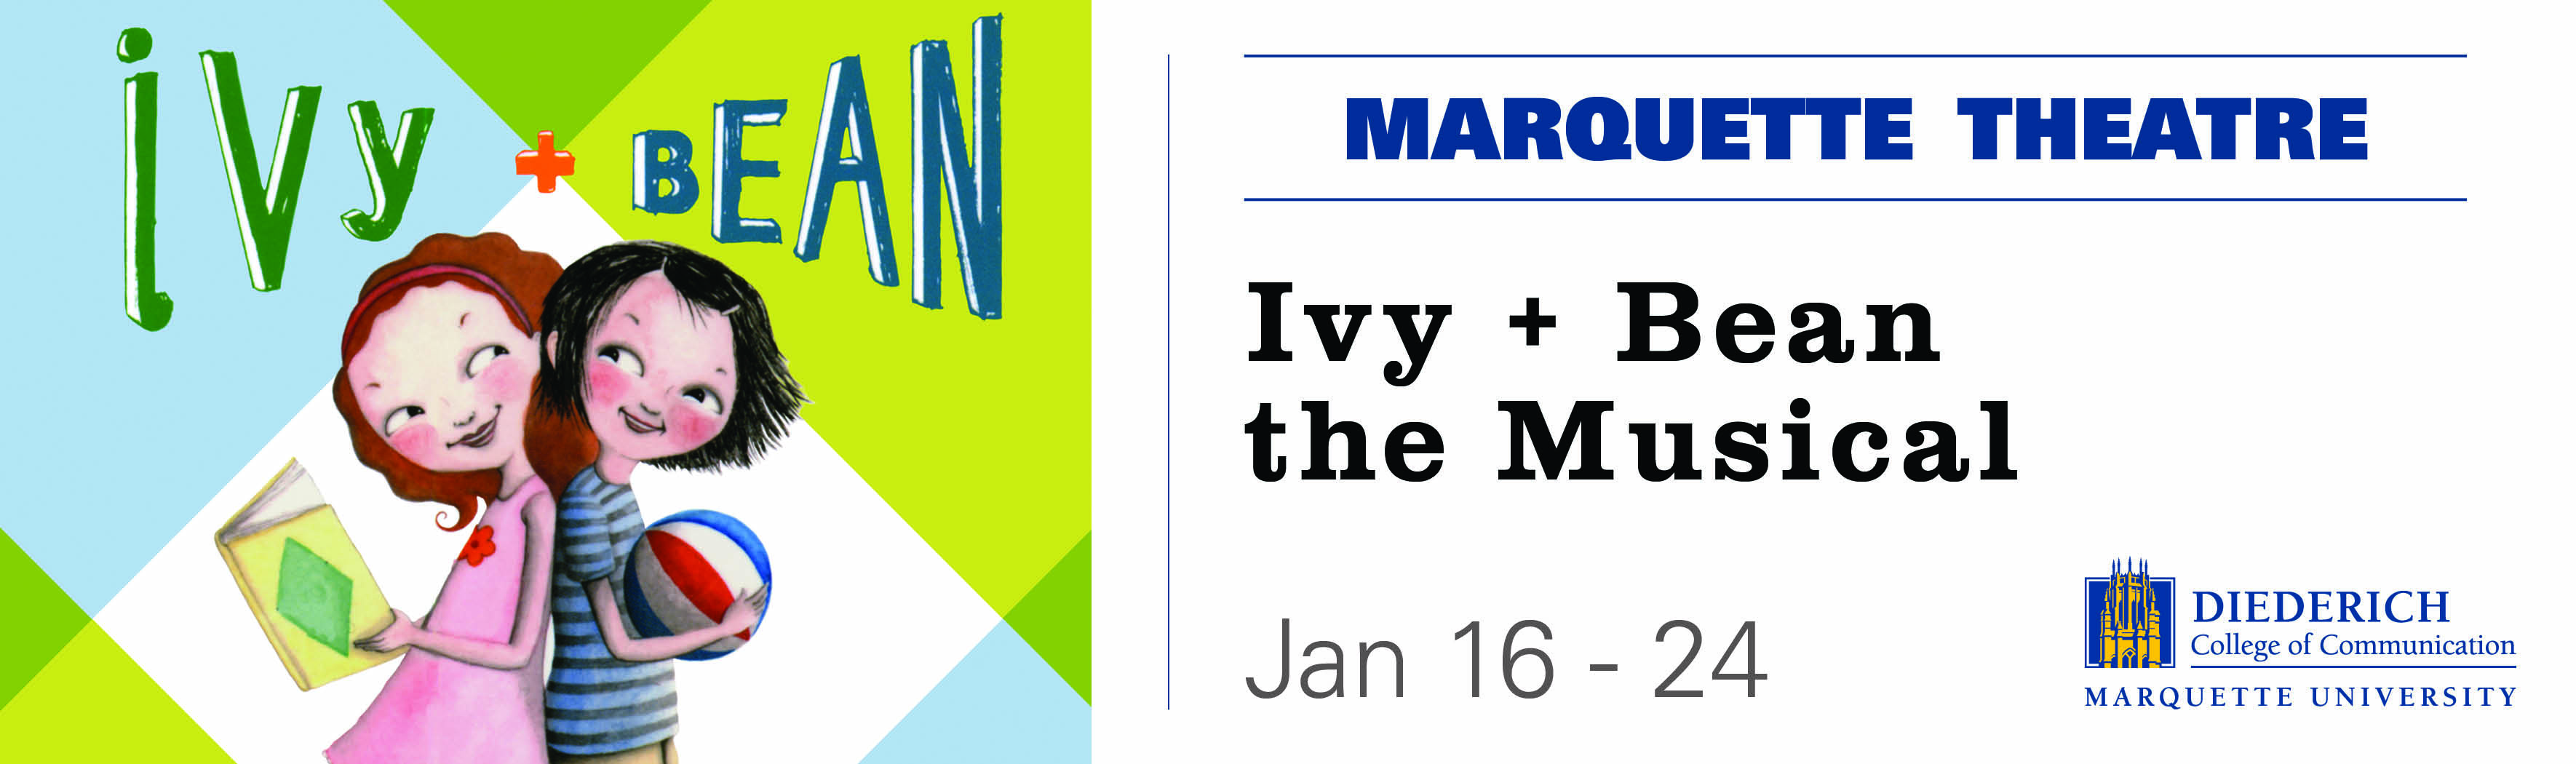 Tickets for Ivy + Bean the Musical in Milwaukee from ShowClix